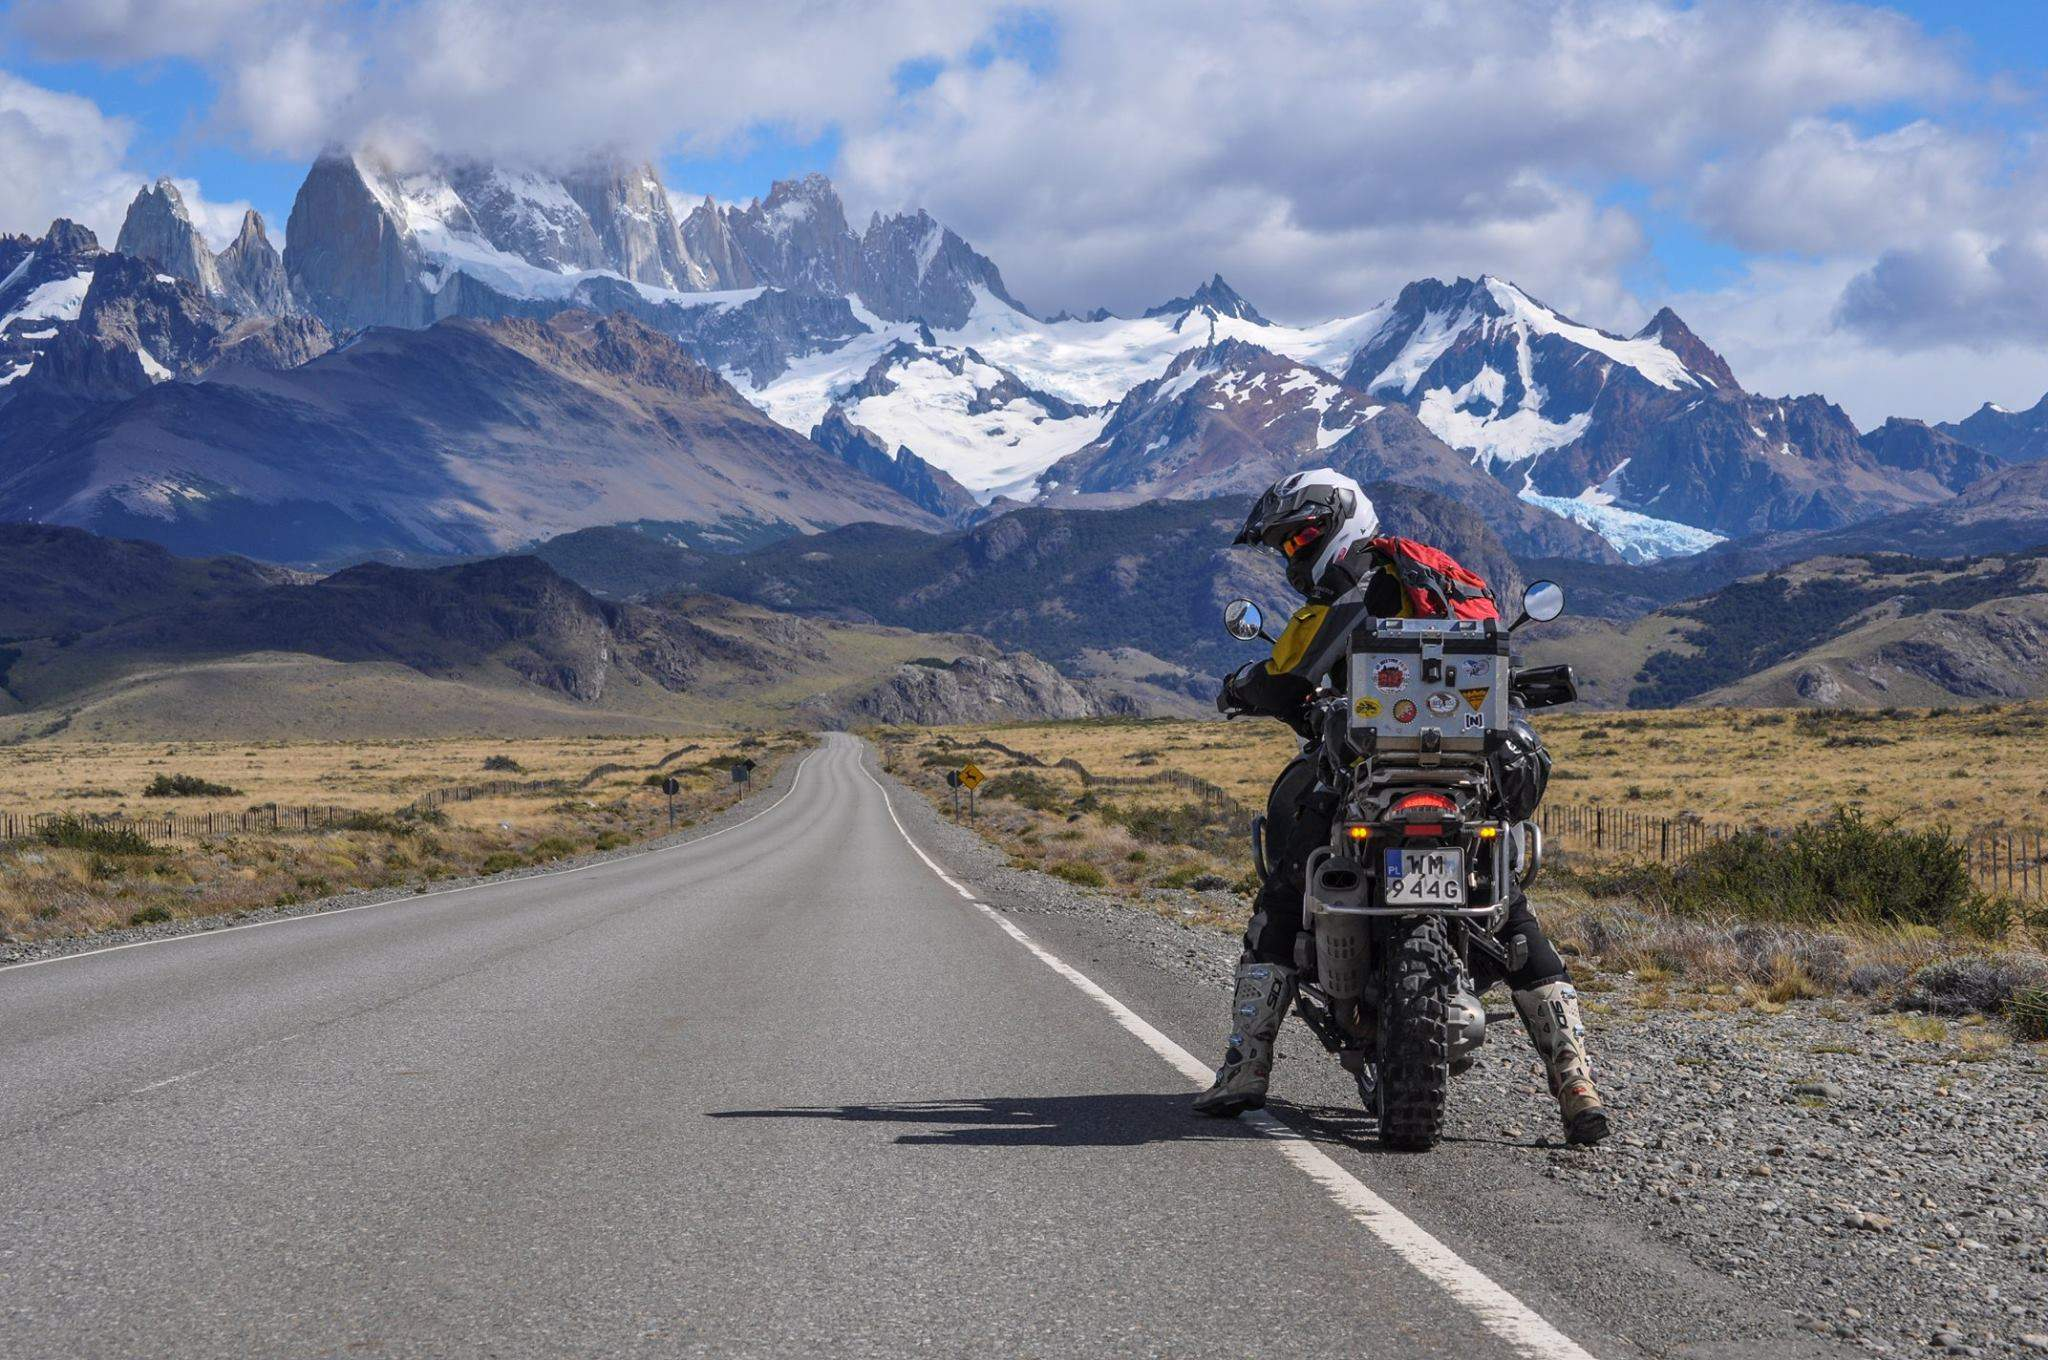 Fitz Roy view. Patagonia motorcycle trip with Advfactory